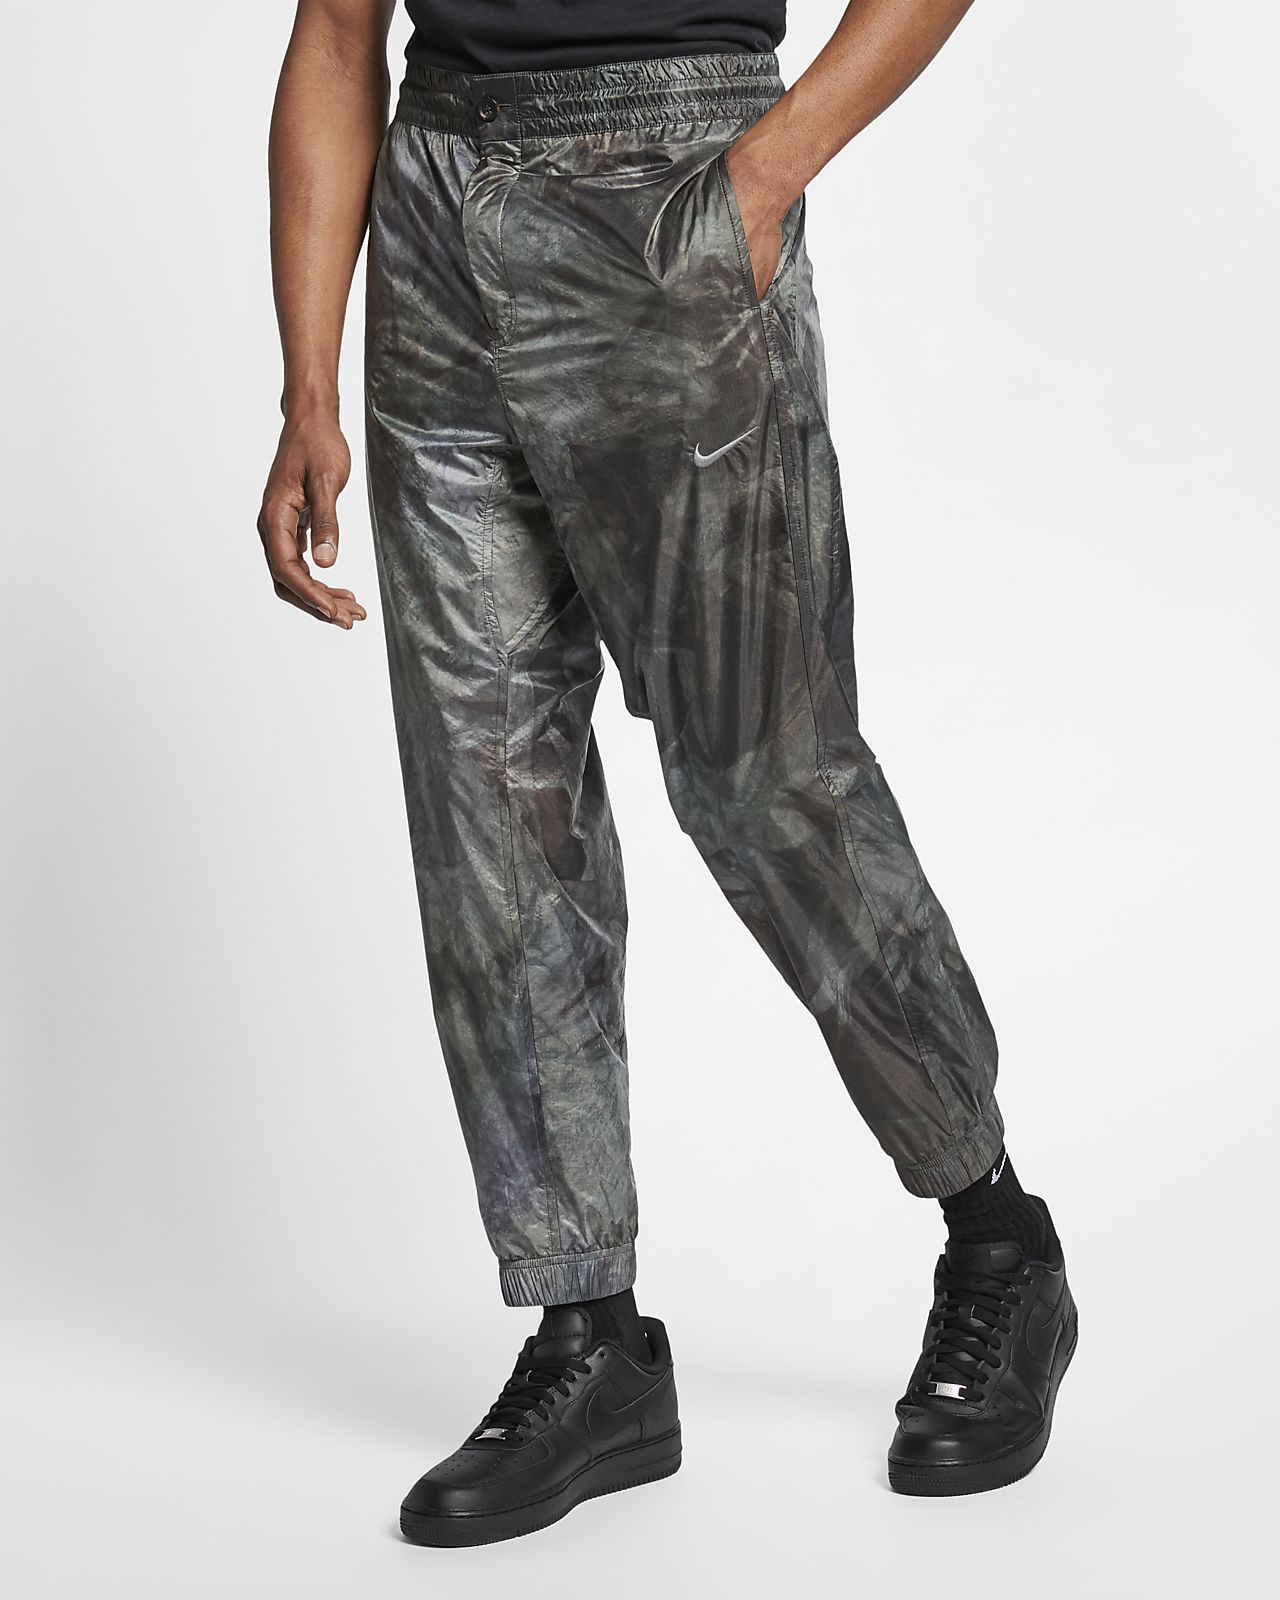 NikeLab Made in Italy Collection  Men's Track Pants